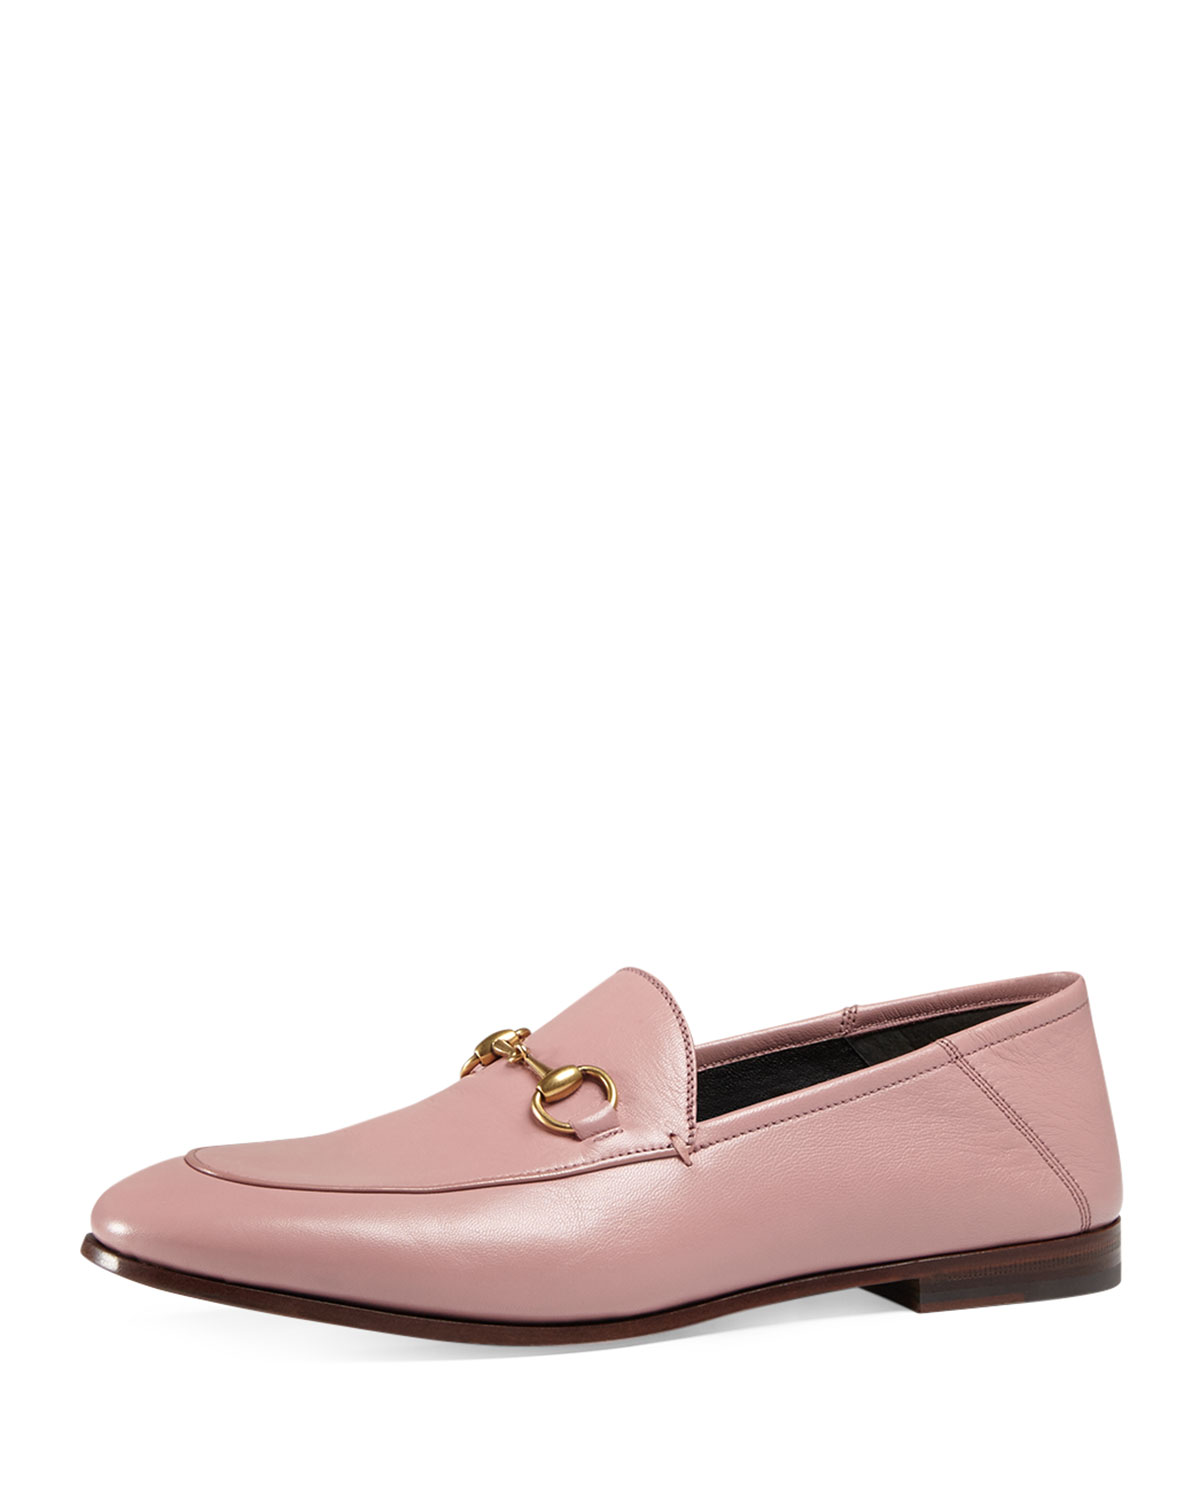 863d825be Gucci Brixton Leather Horsebit Loafer